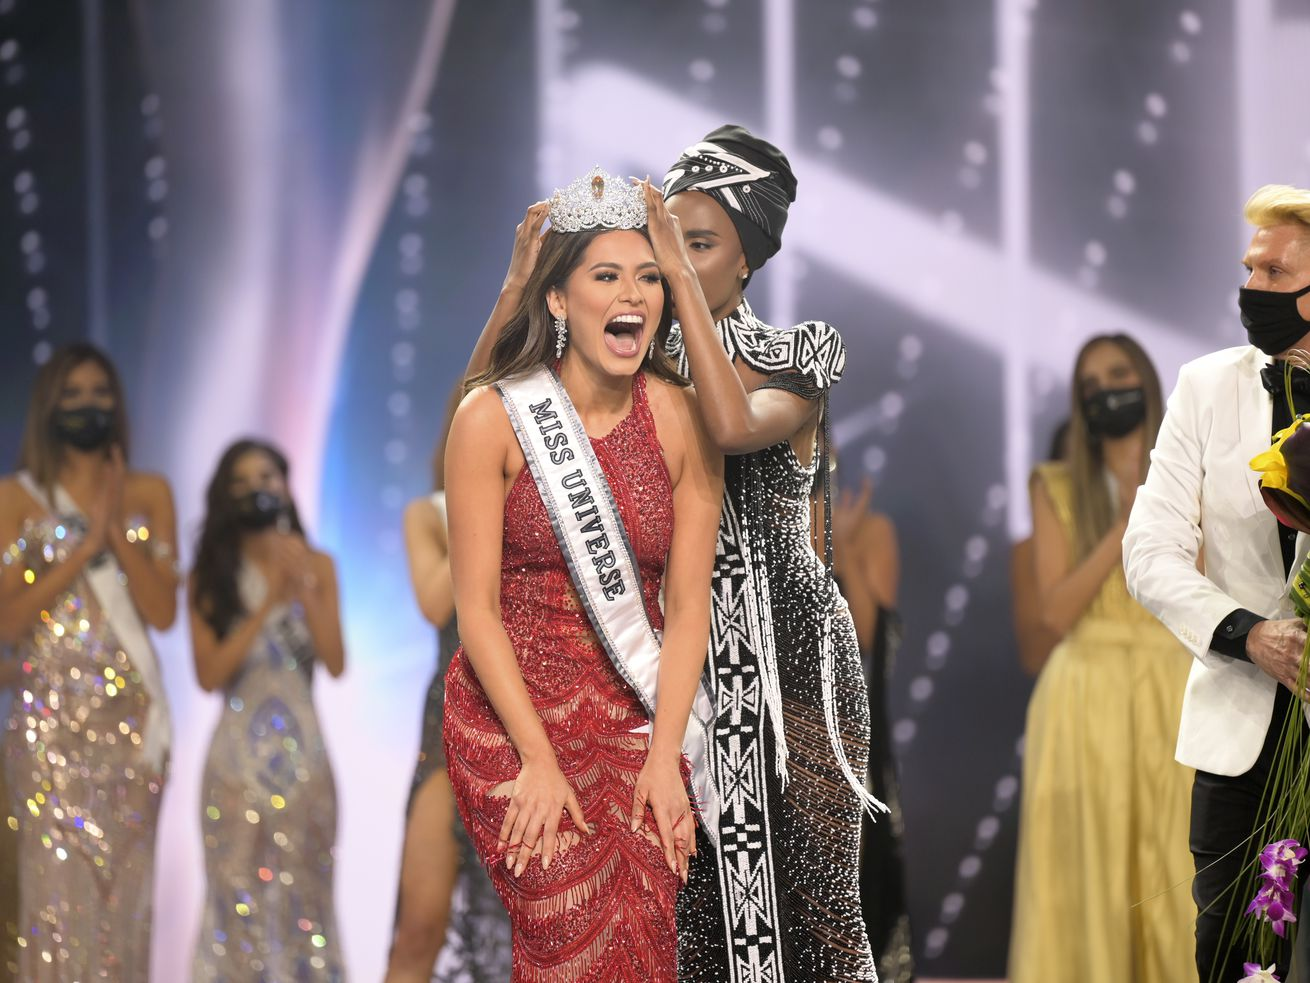 Miss Universe Mexico 2020 Andrea Meza reacts as she is crowned by Miss Universe 2019 Zozibini Tunzi at the 69th Miss Universe Competition.